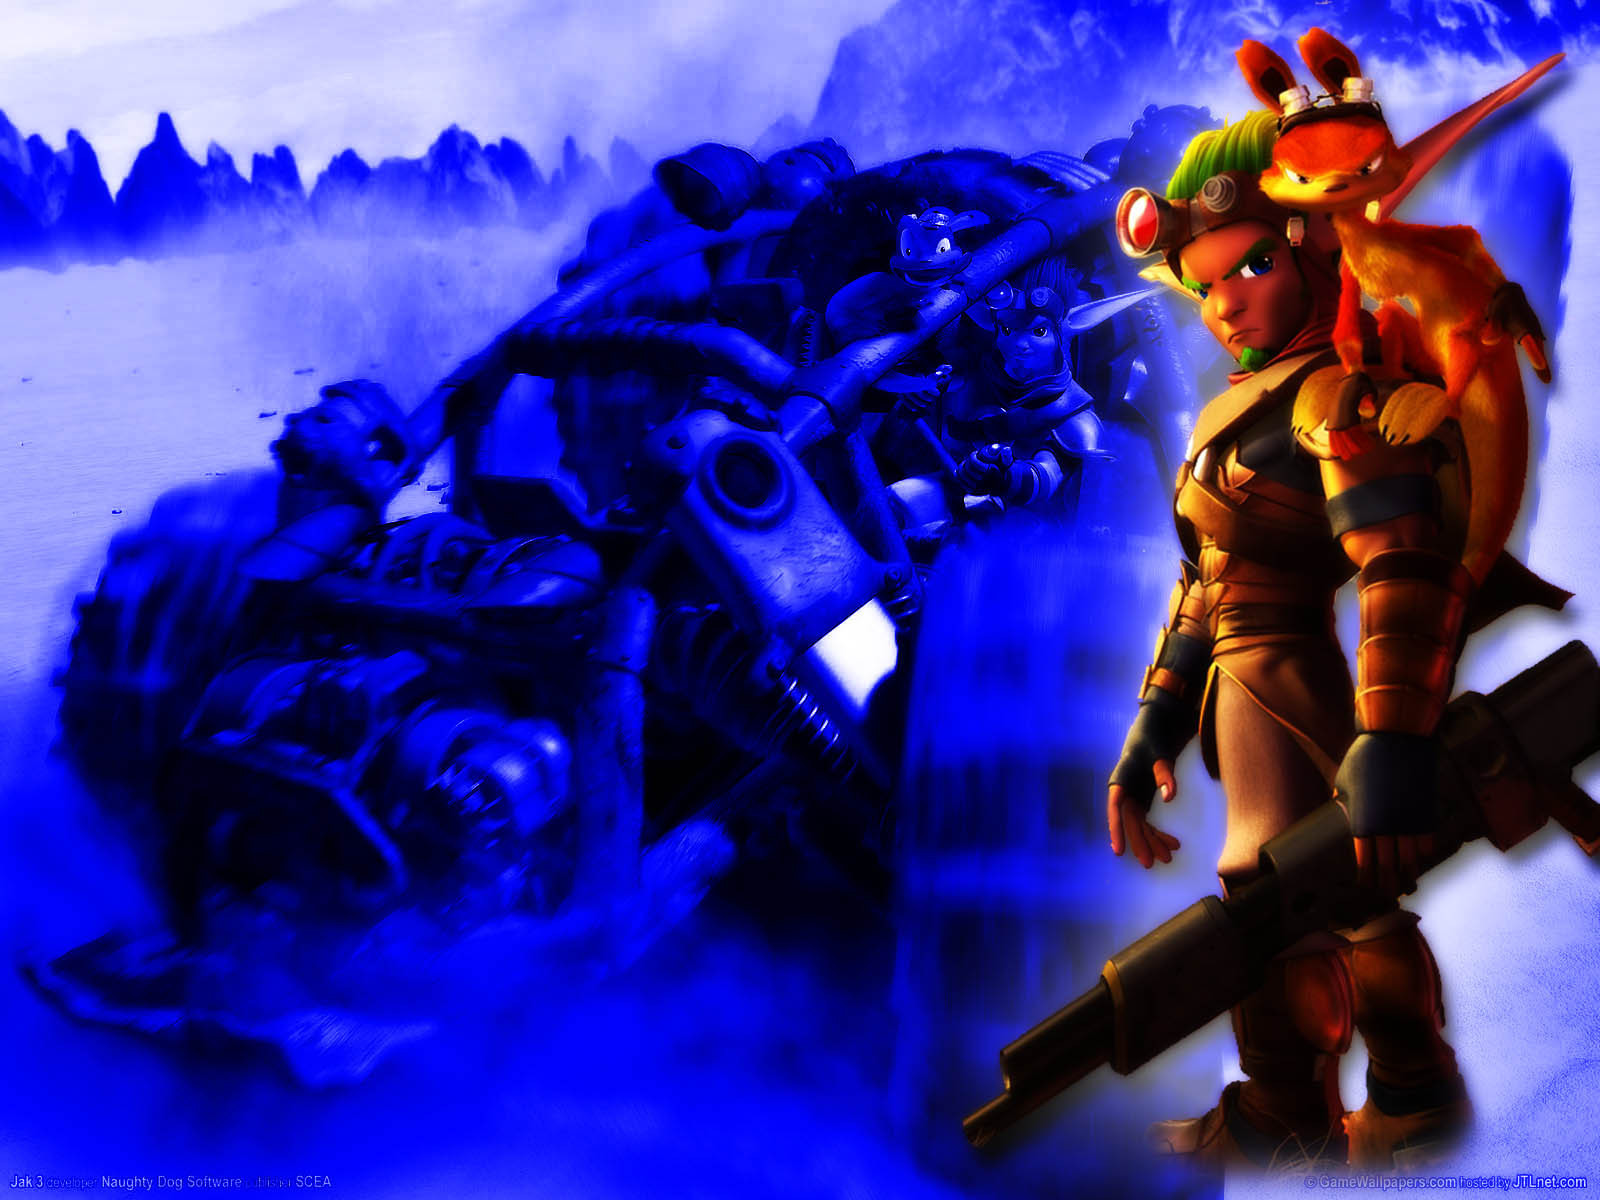 daxter images hd wallpaper - photo #14